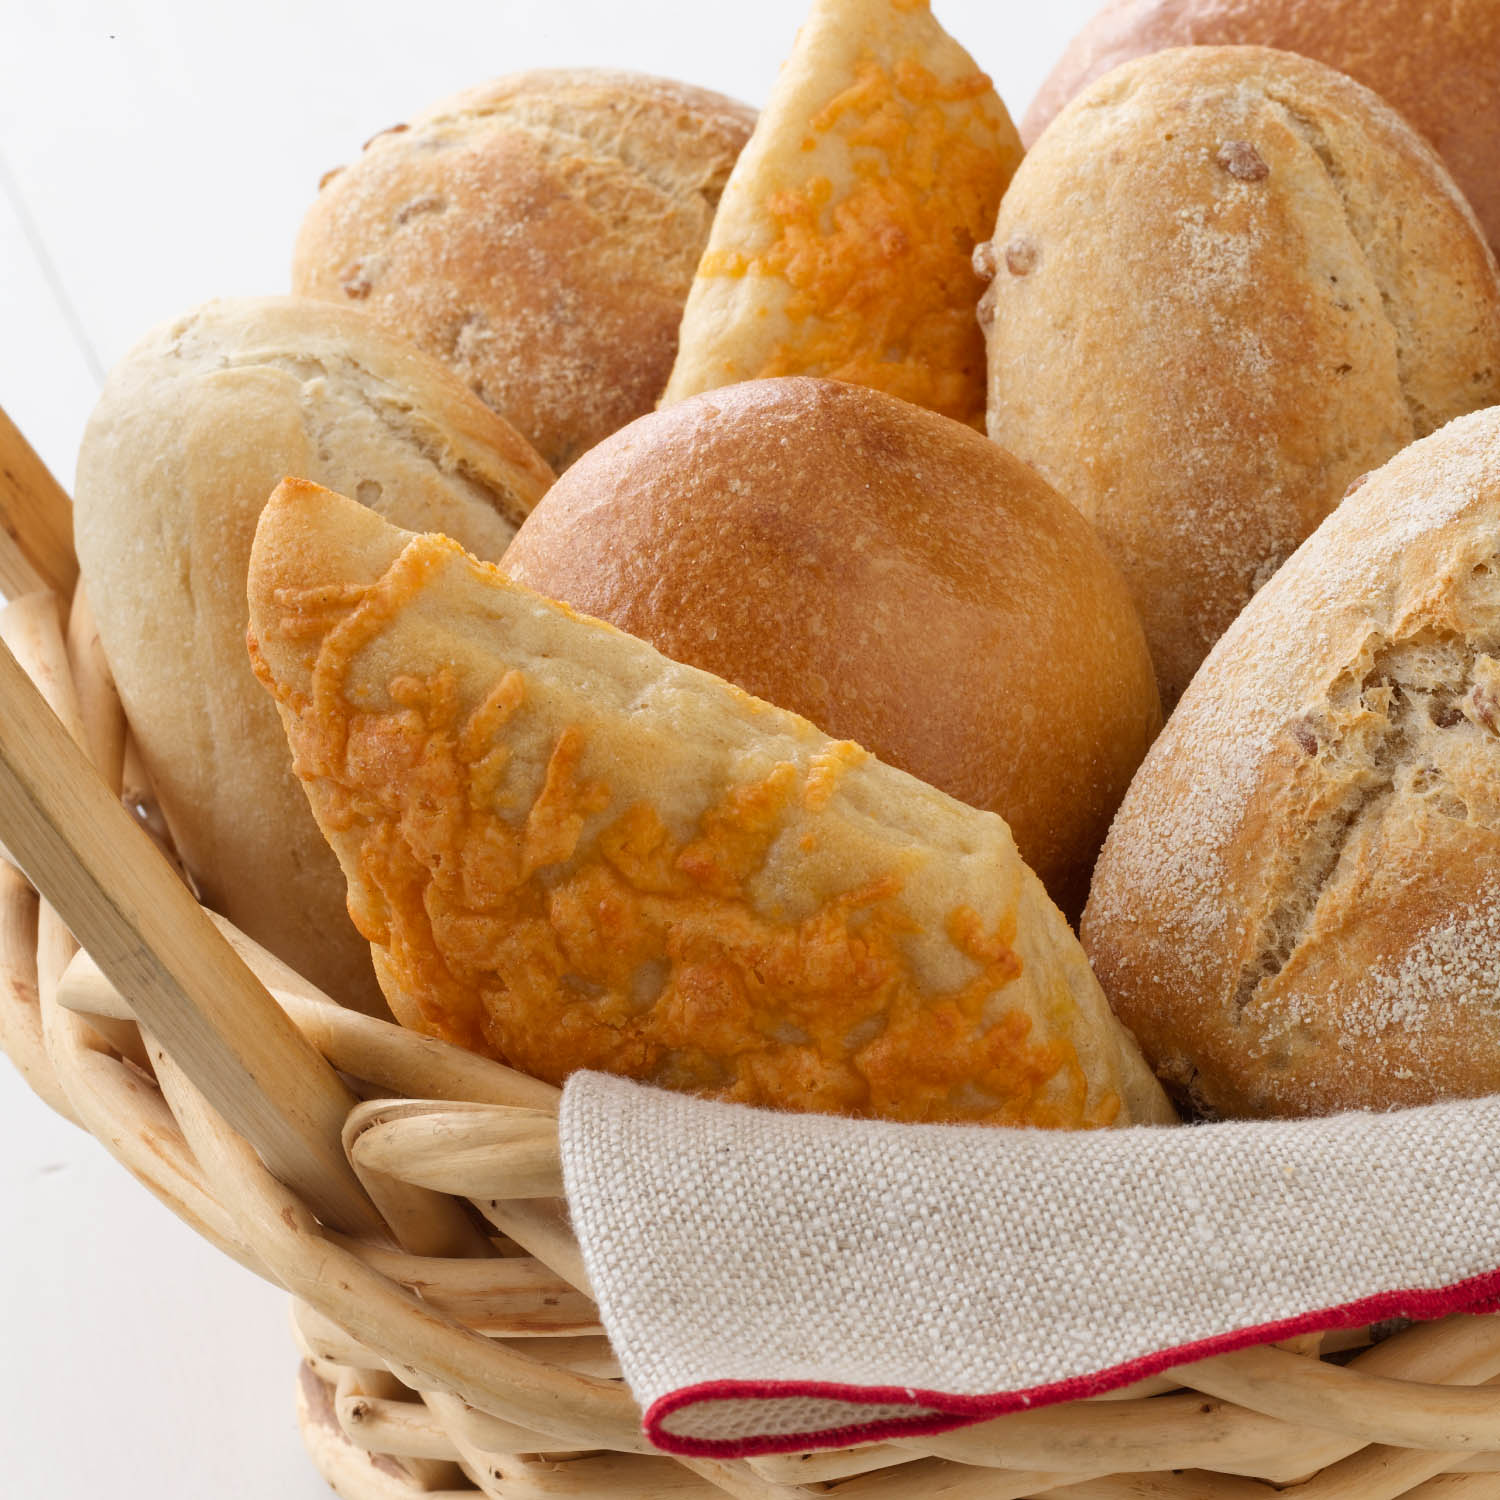 European Inspired Artisan Breads & Rolls